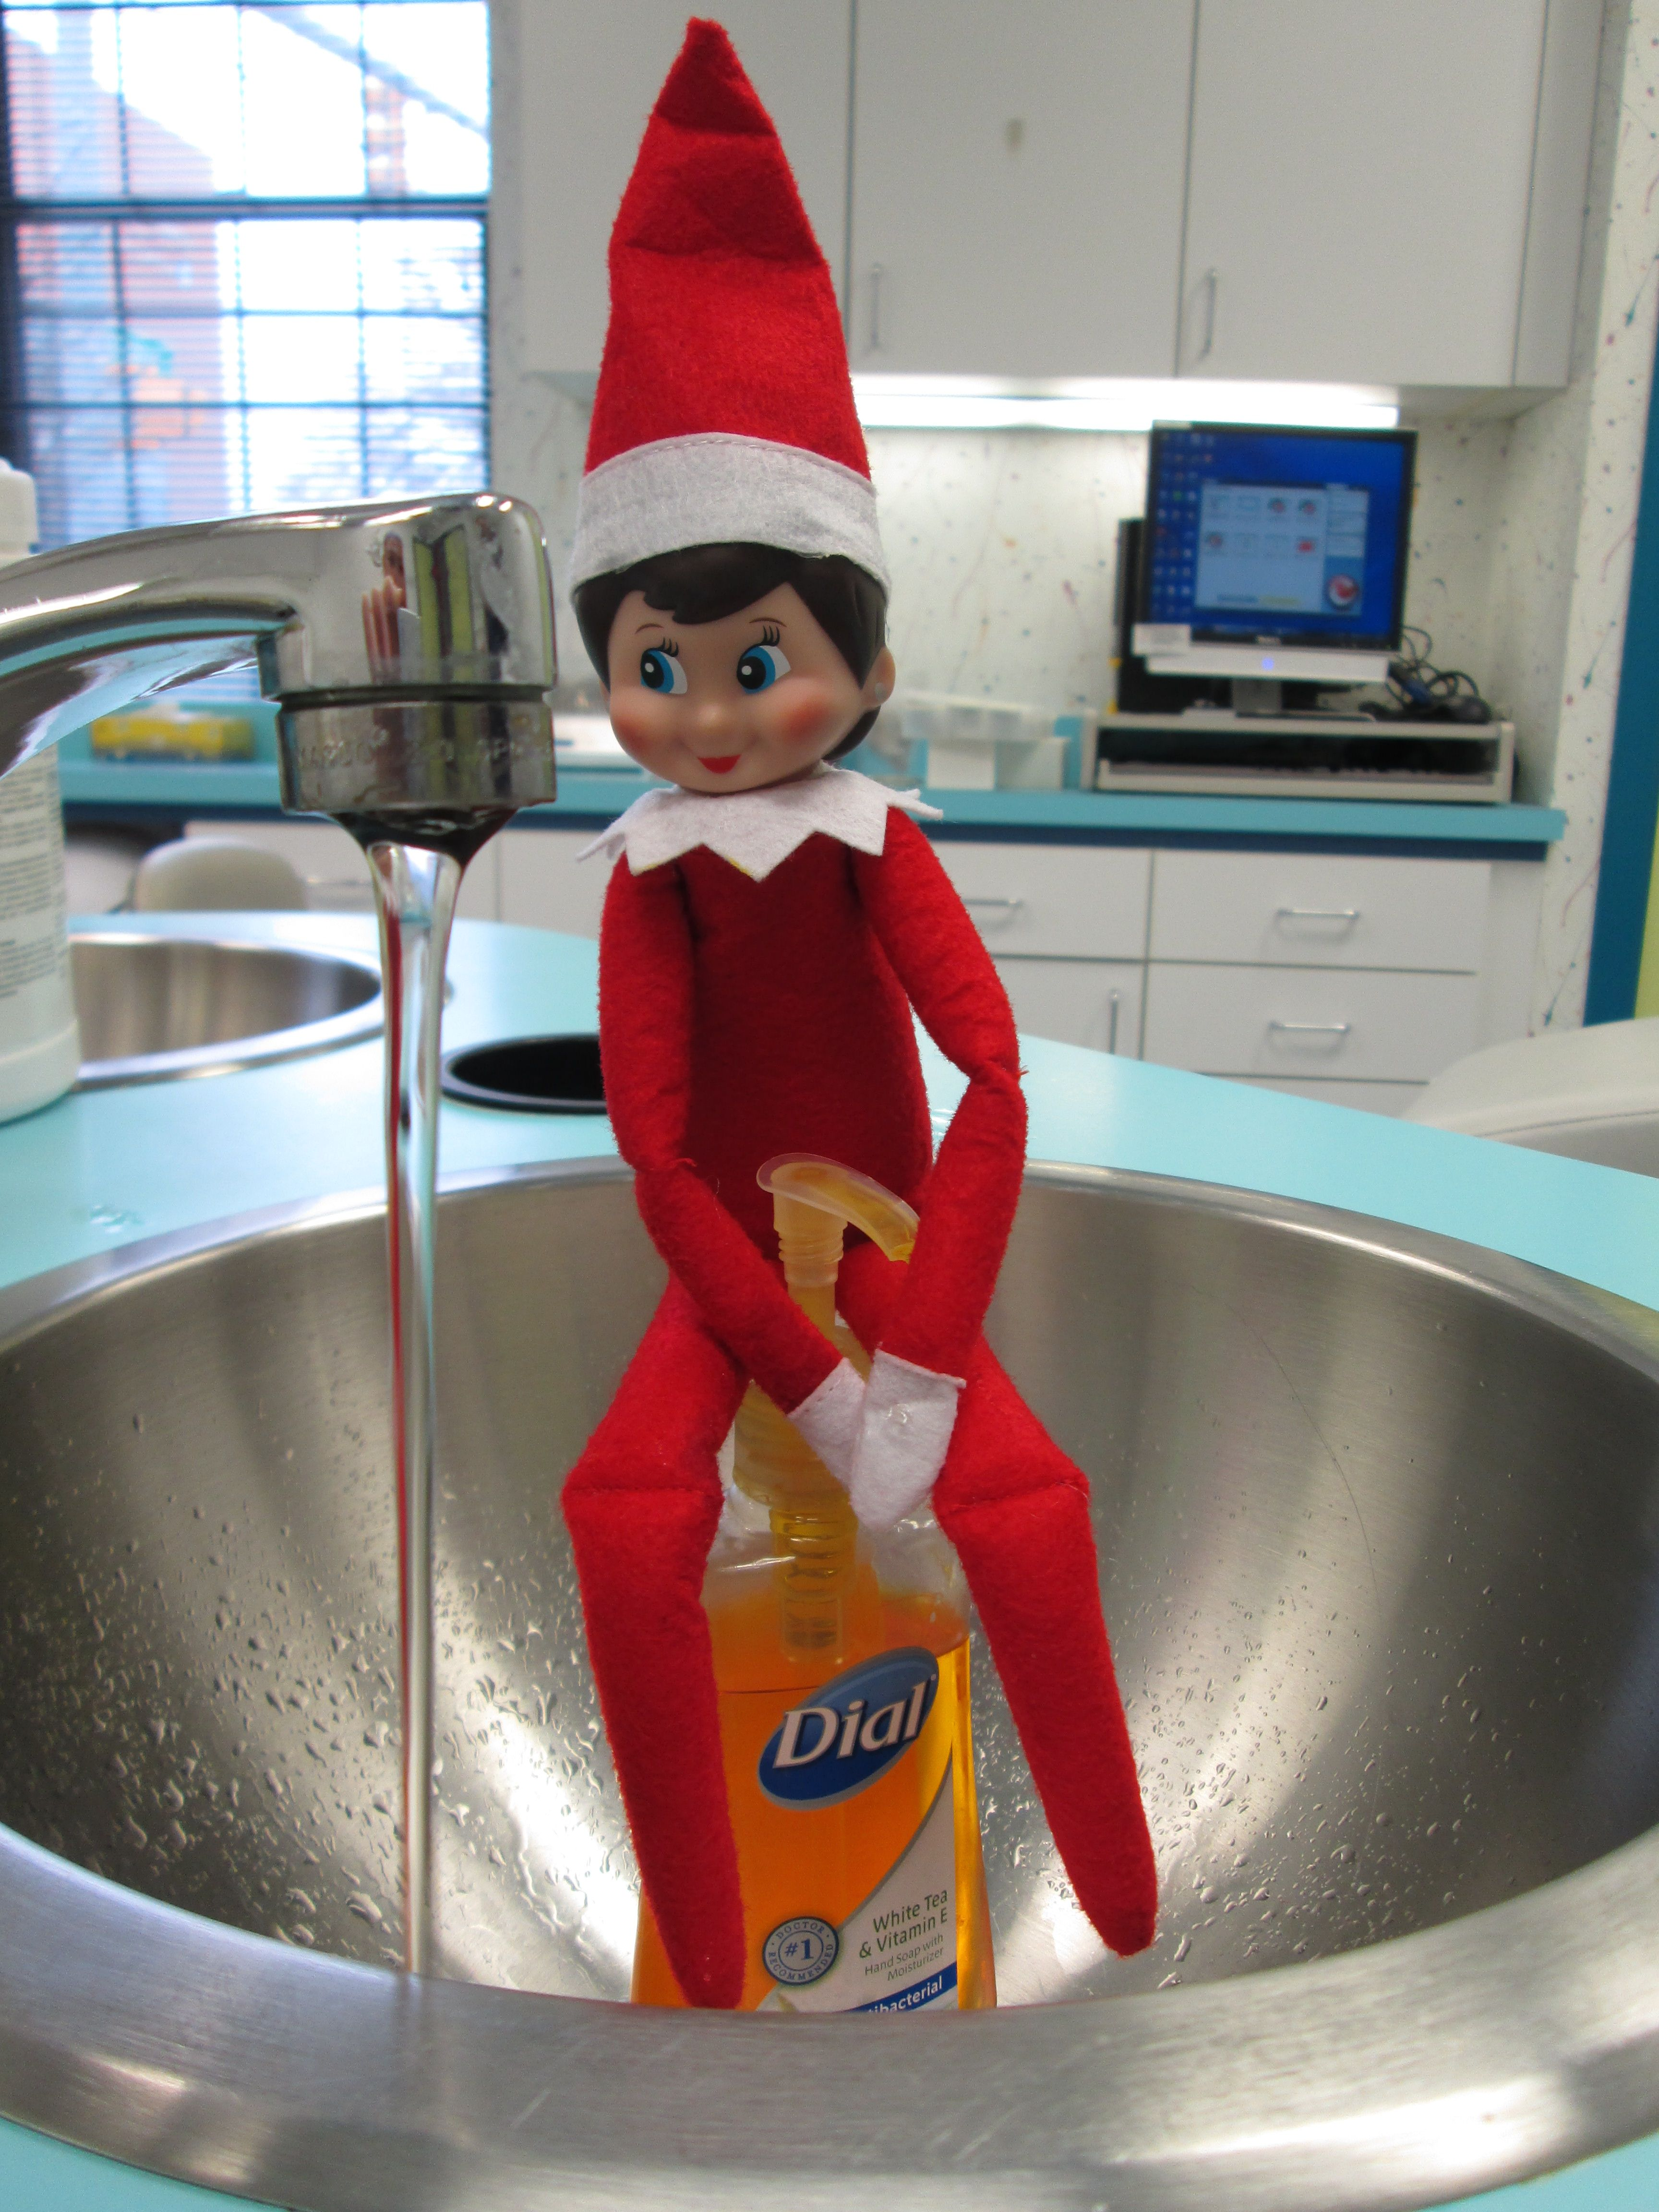 Flu season requires frequent hand washing.  Even for an Elf!